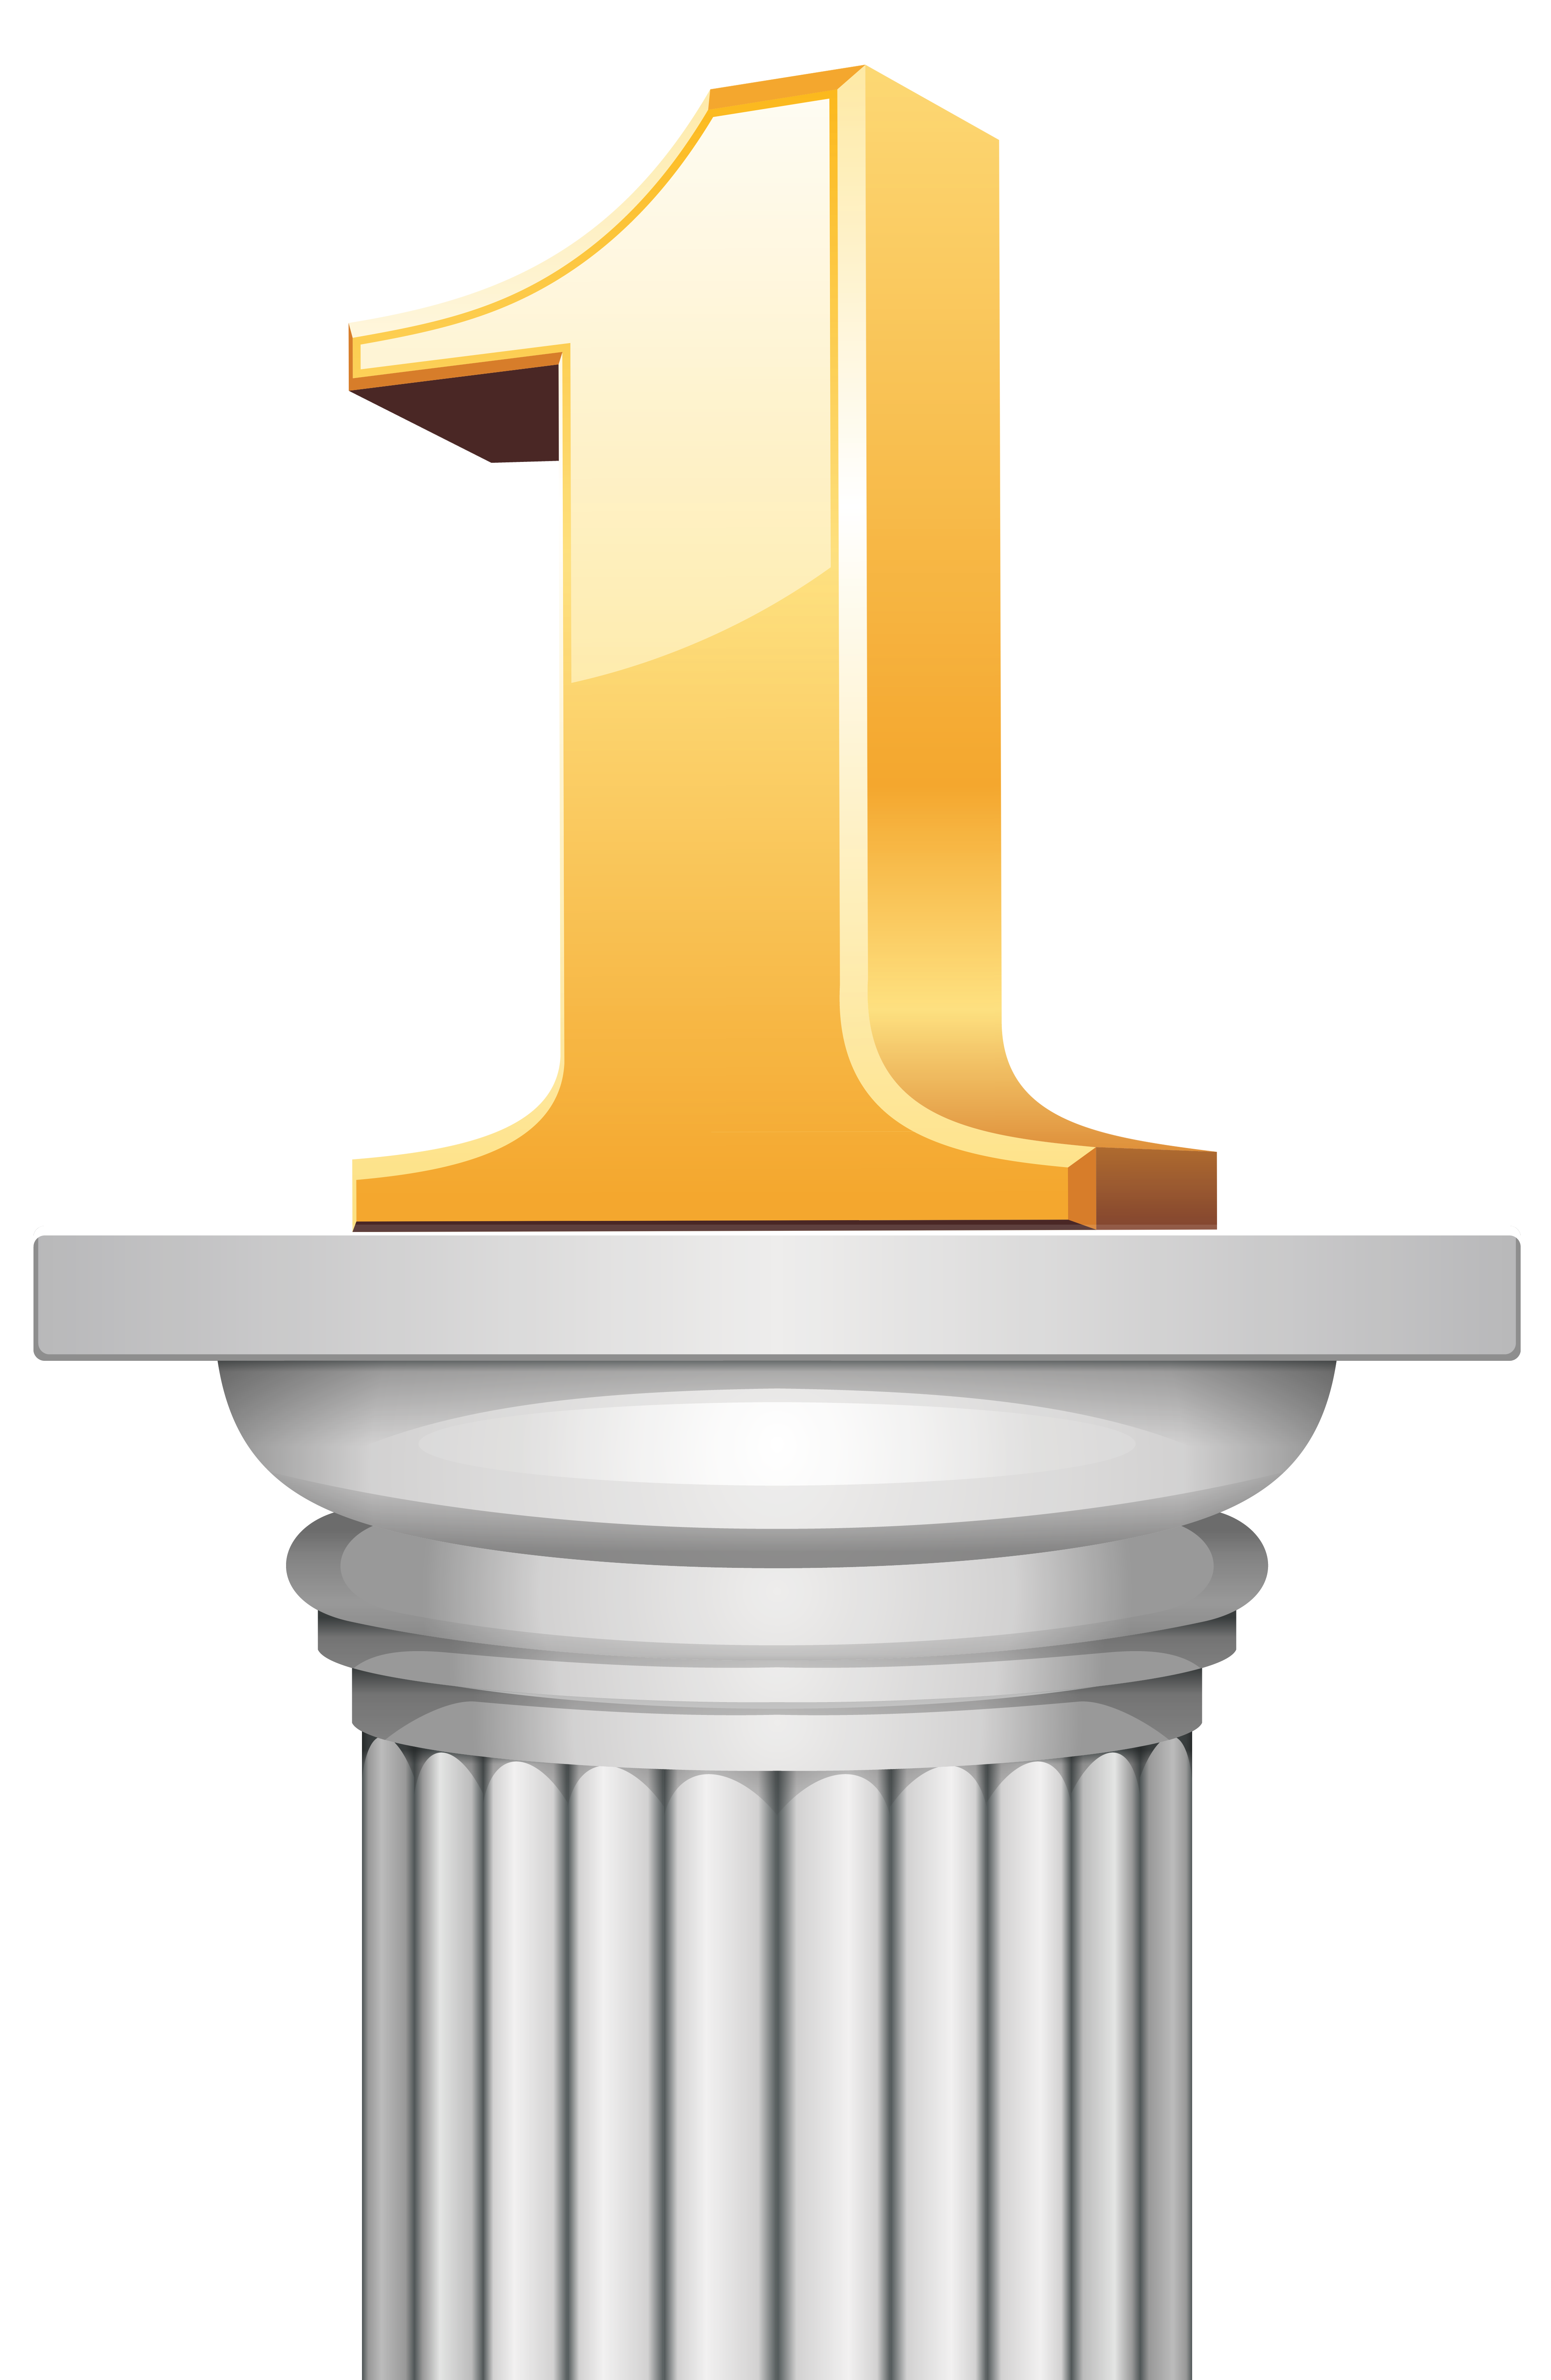 First Place Statue PNG Clip Art Image.